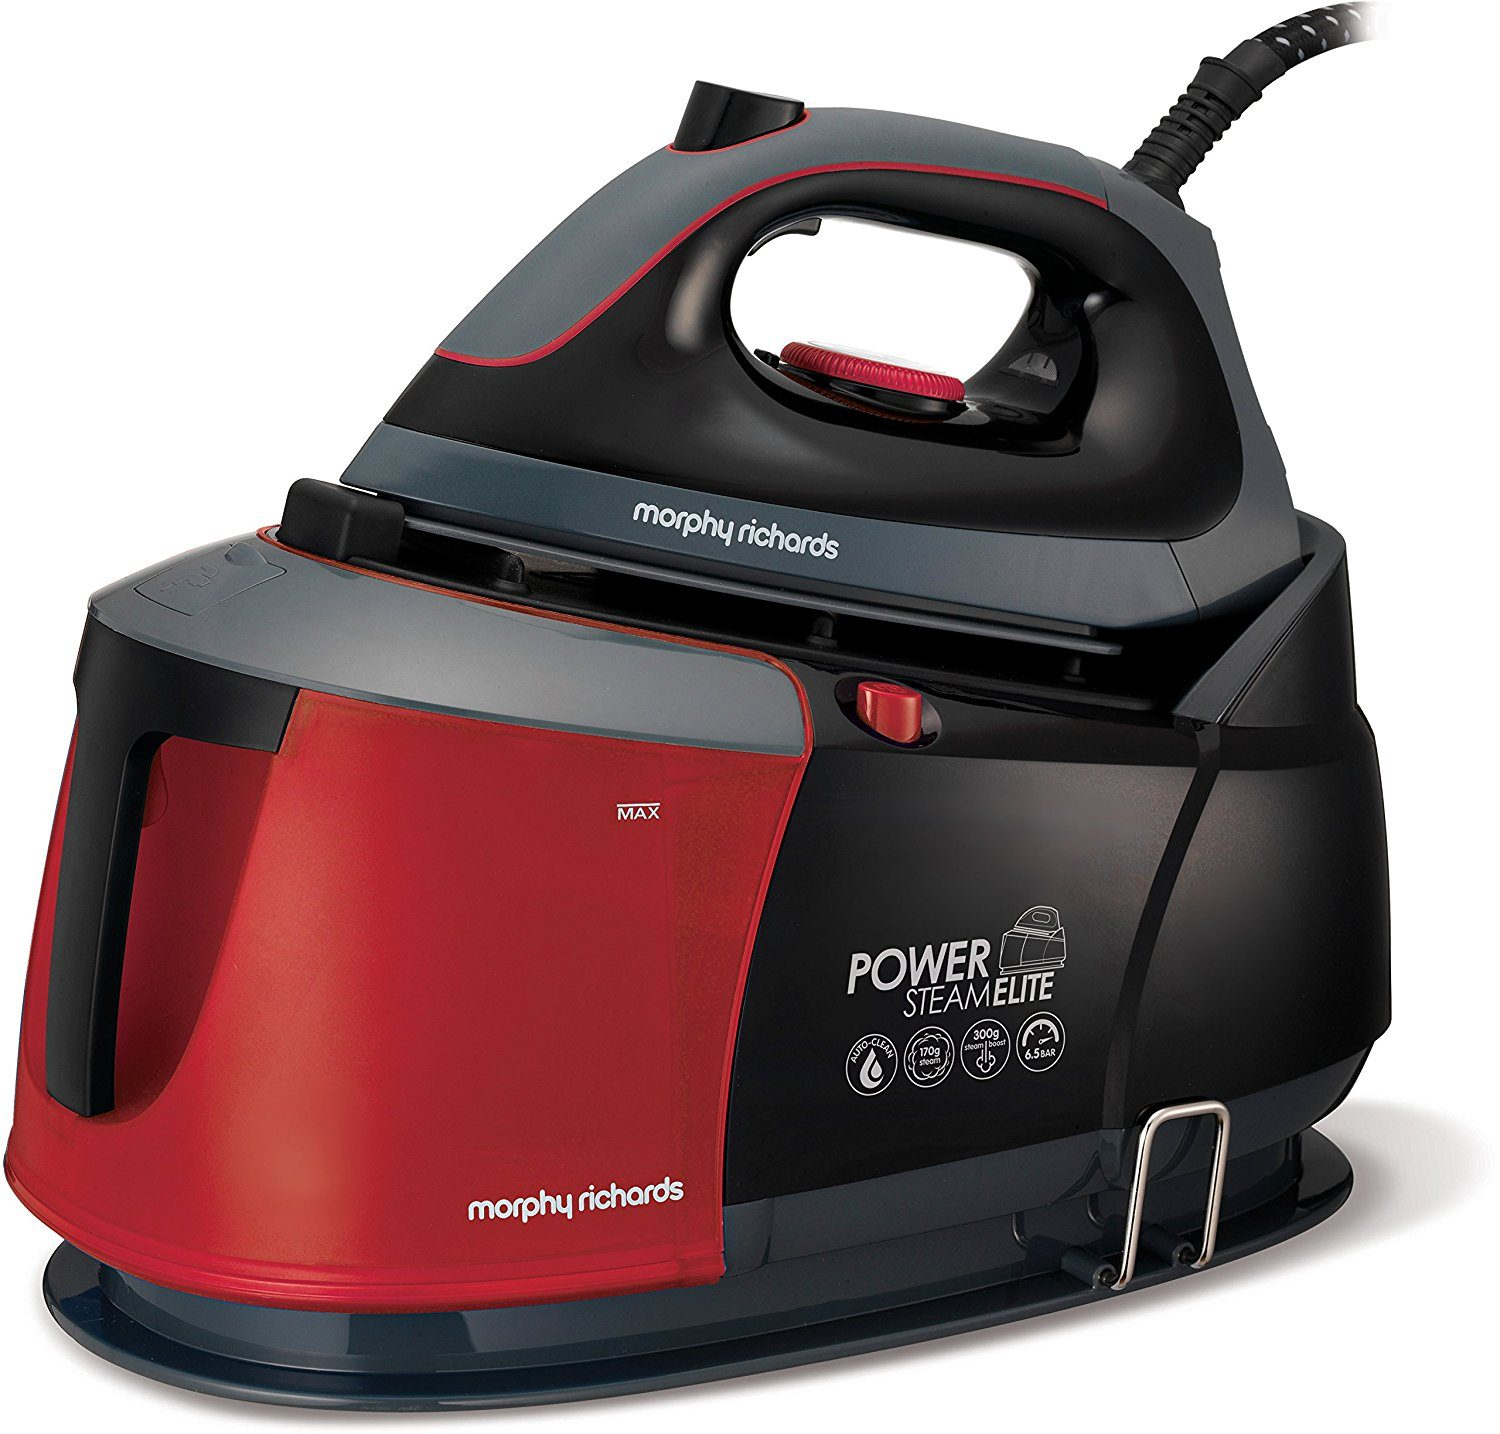 Morphy Richards 332006 Power Steam Elite Steam Generator Iron with Auto Clean